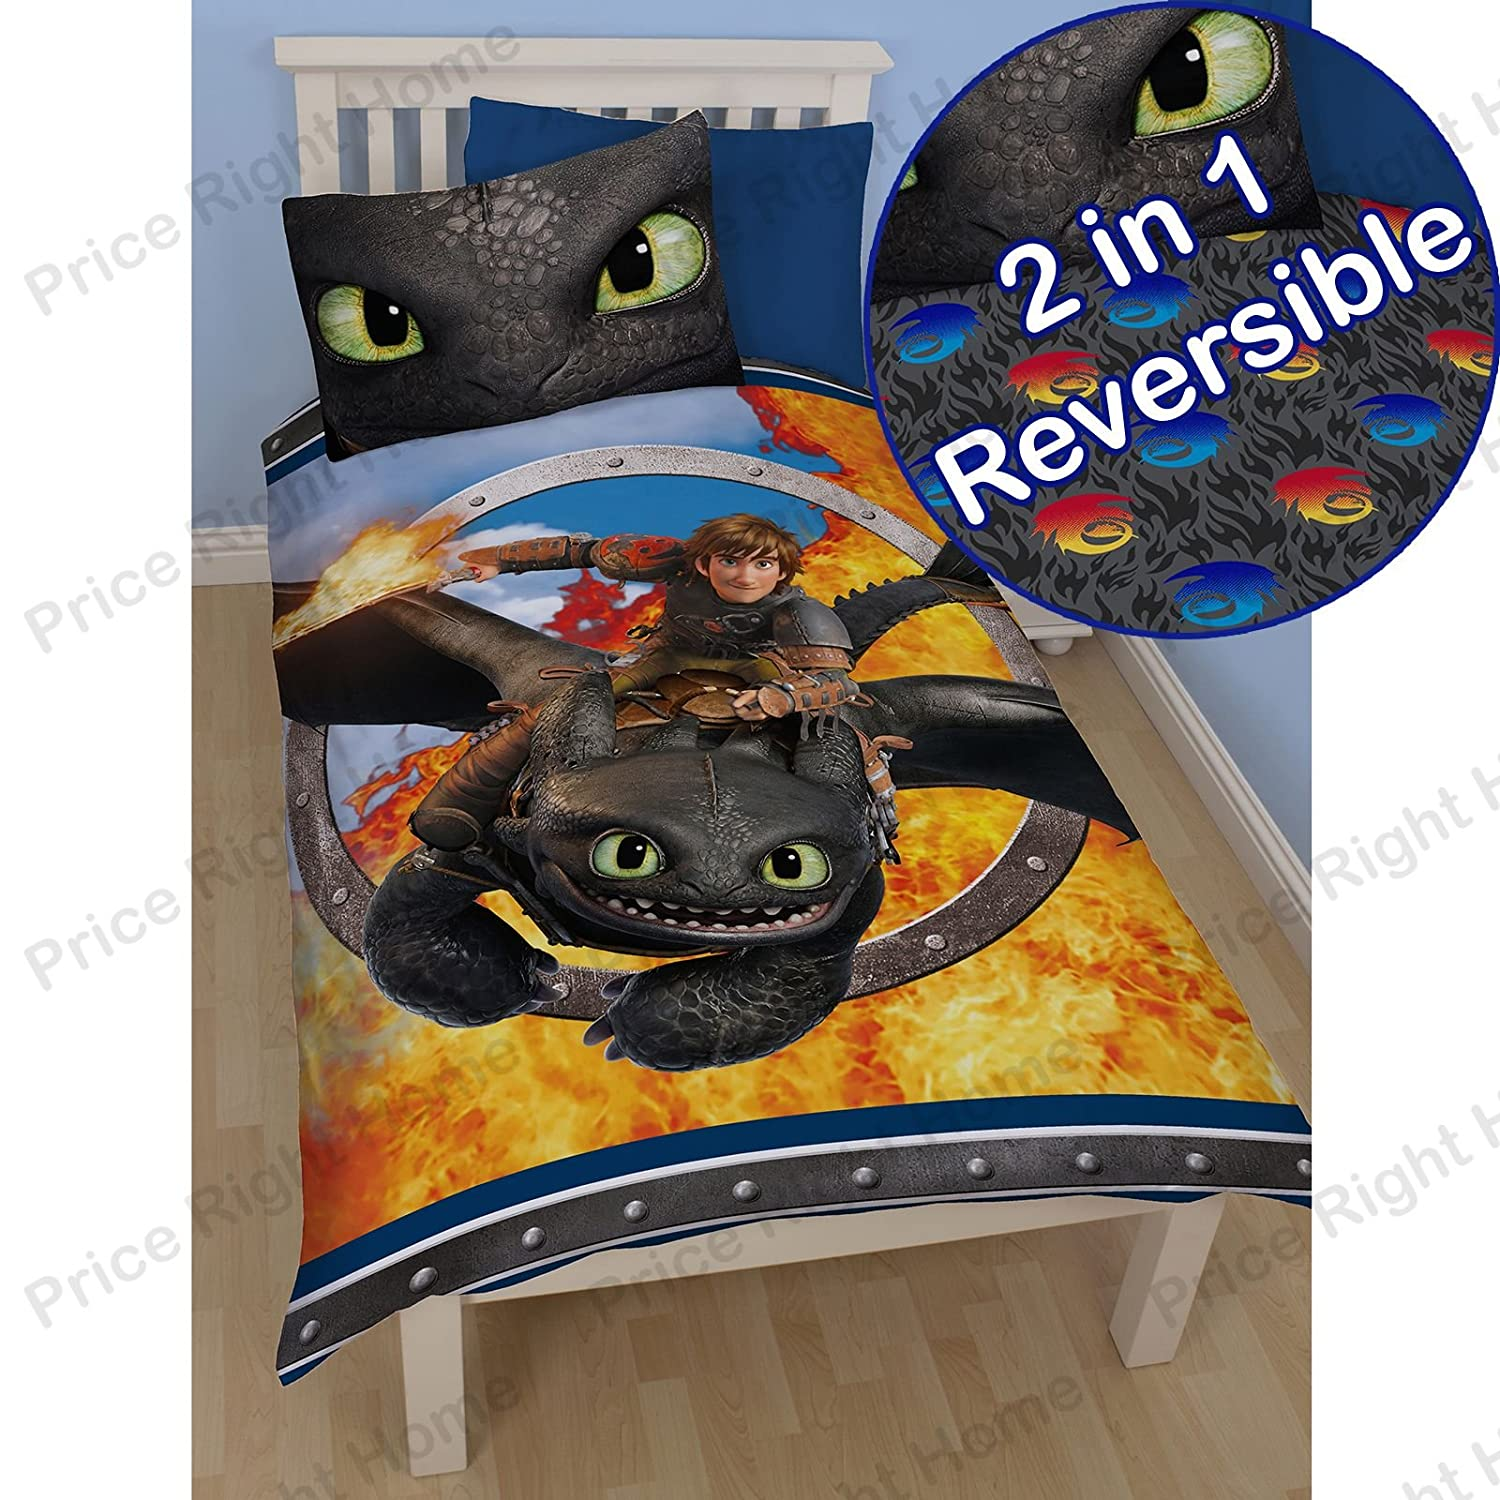 Character world dreamworks dragons toothless single panel duvet set character world dreamworks dragons toothless single panel duvet set amazon kitchen home ccuart Gallery